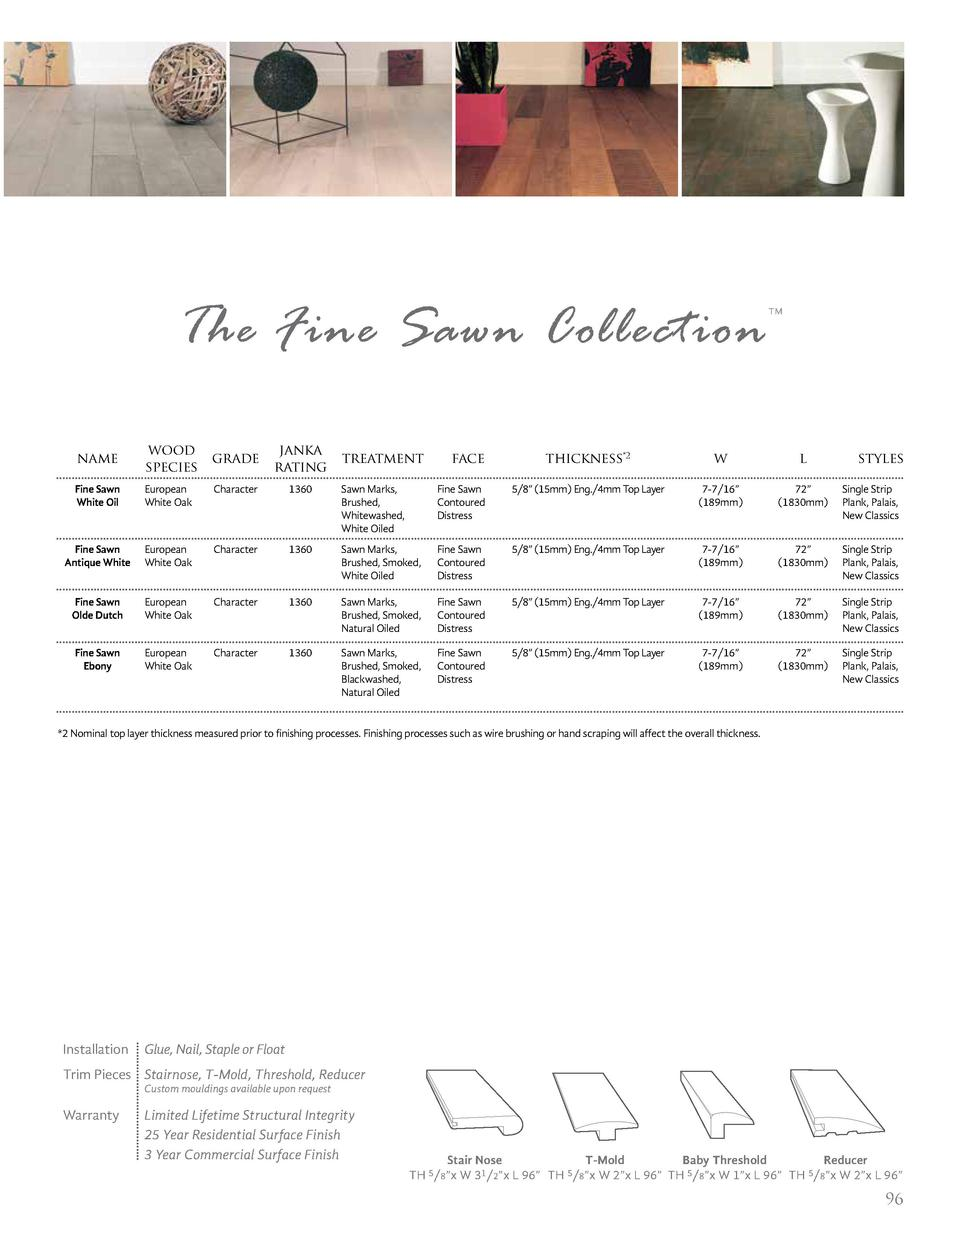 The Fine Sawn Collection name  wood grade species  janka rating  Fine Sawn White Oil  European White Oak  Character  1360 ...